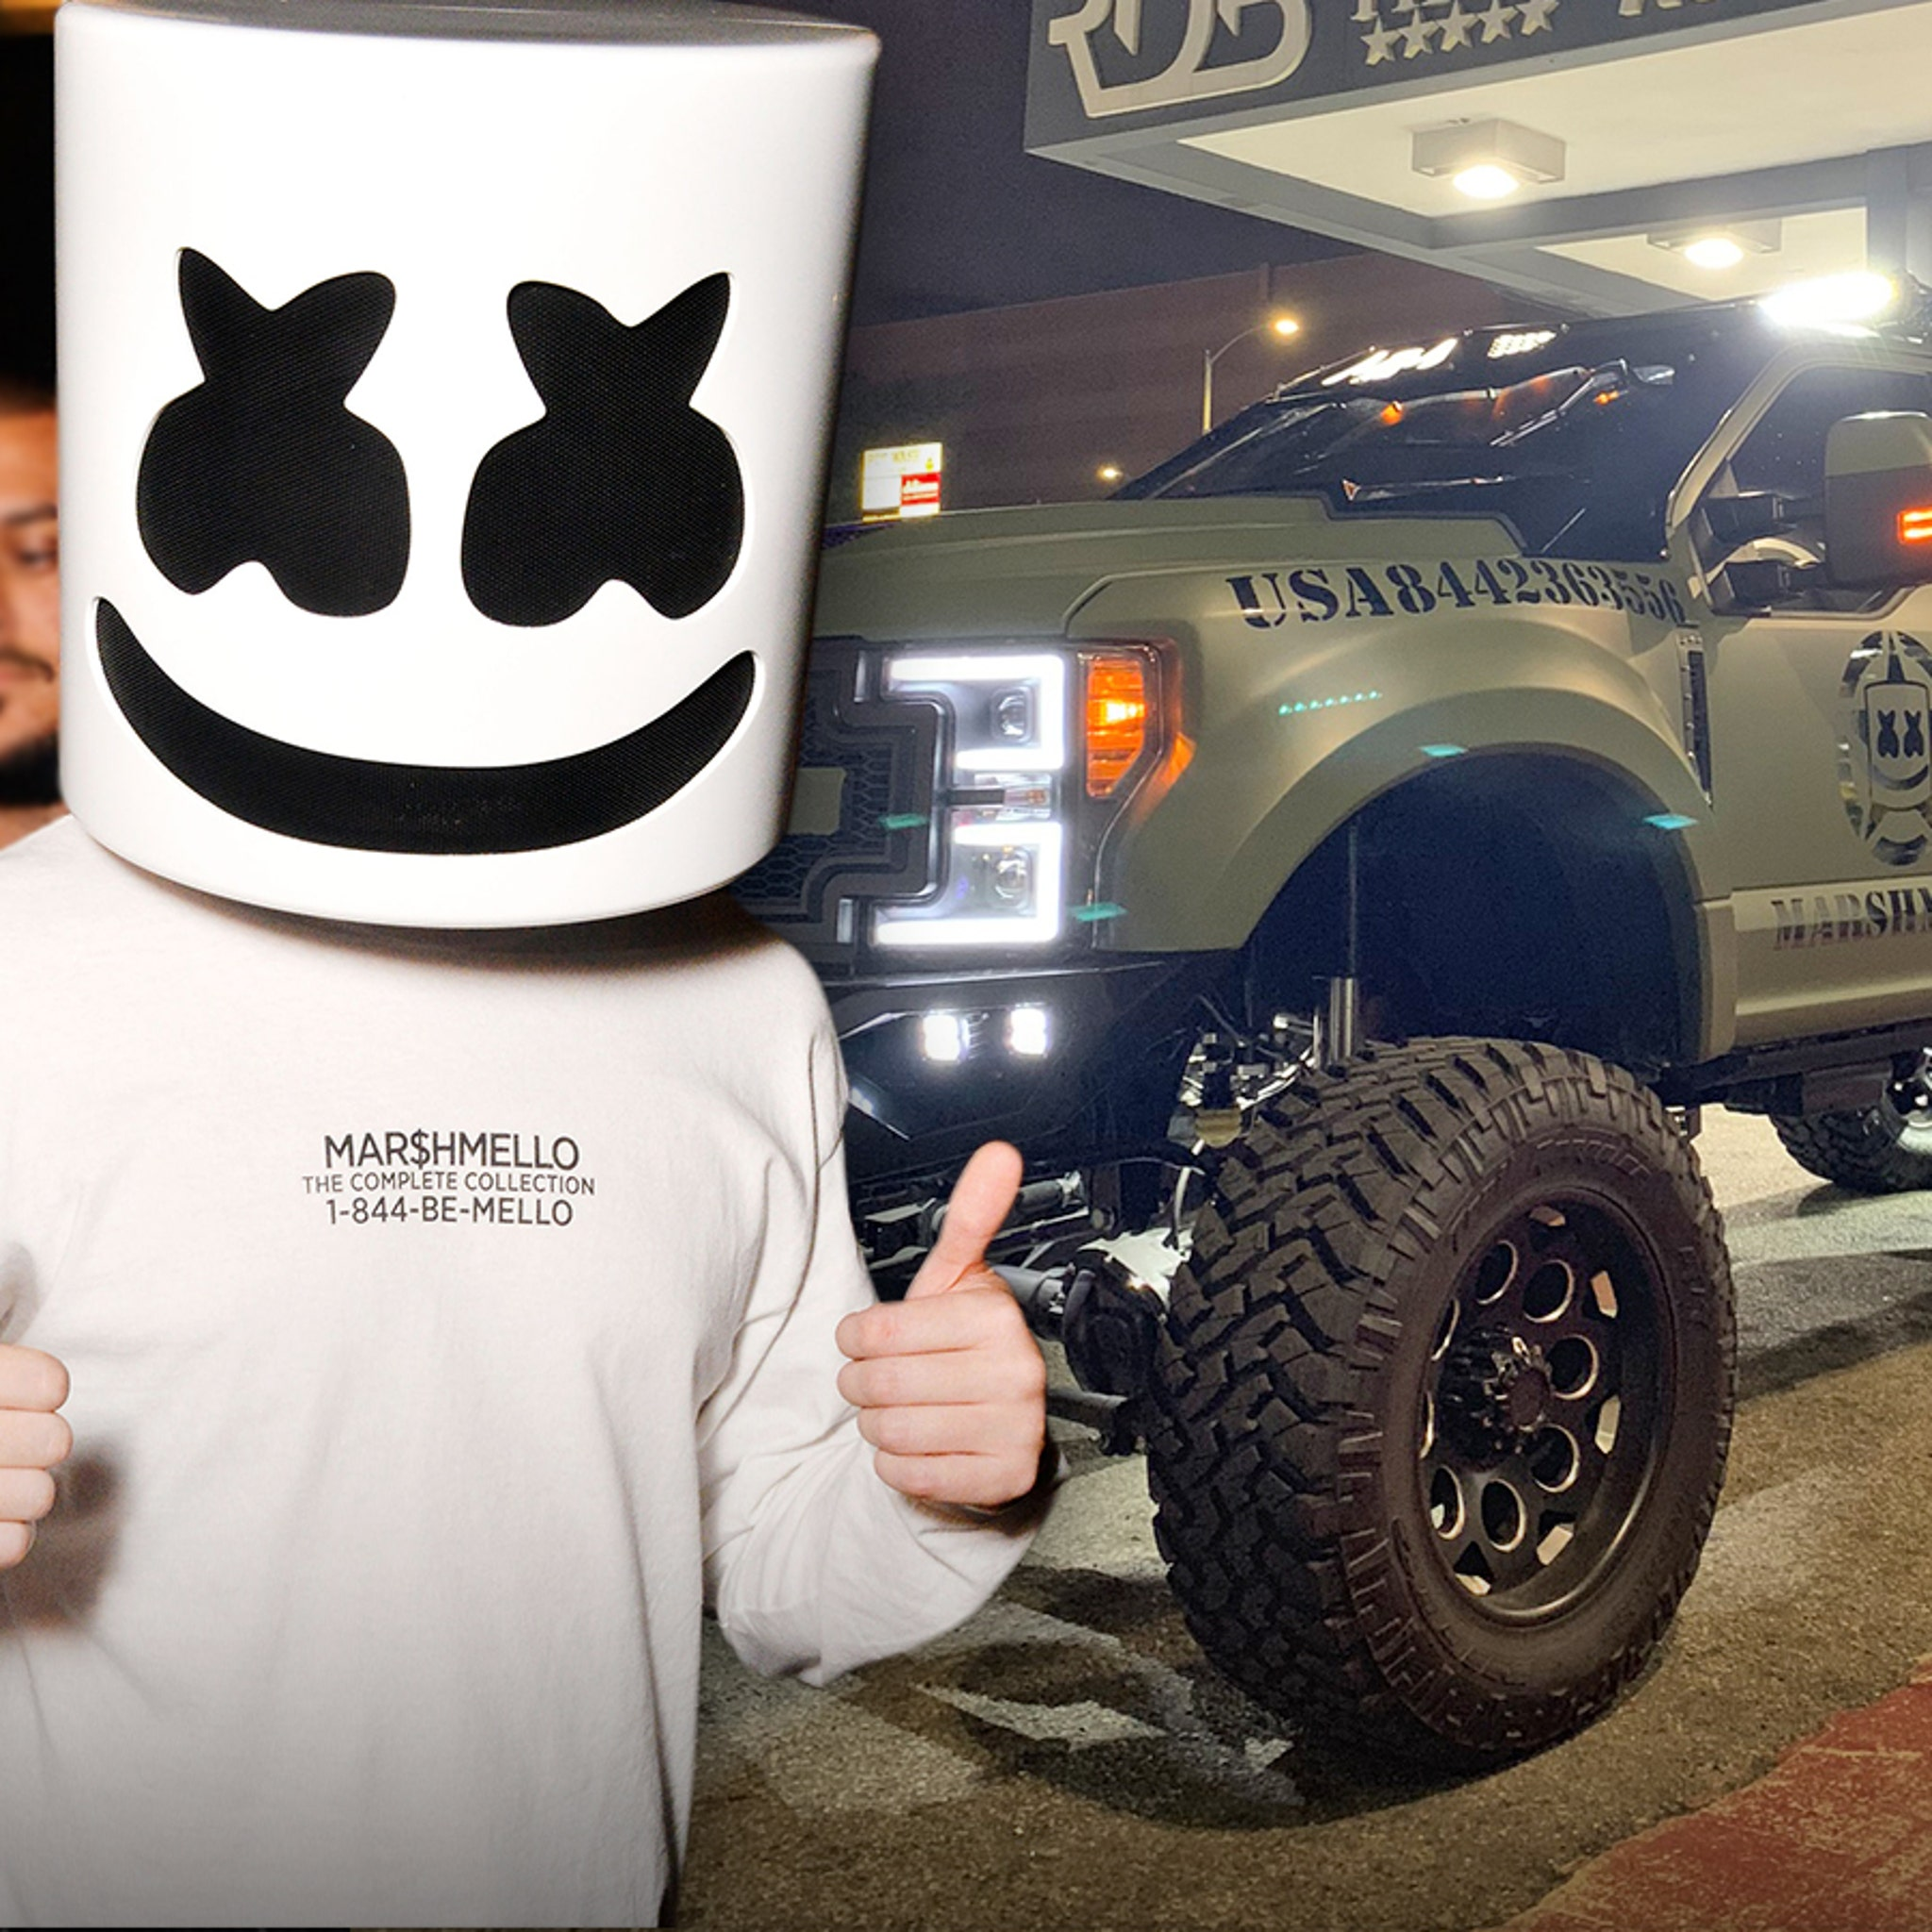 Marshmello Drops $500,000 to Trick Out His Truck Like a Vegas Nightclub